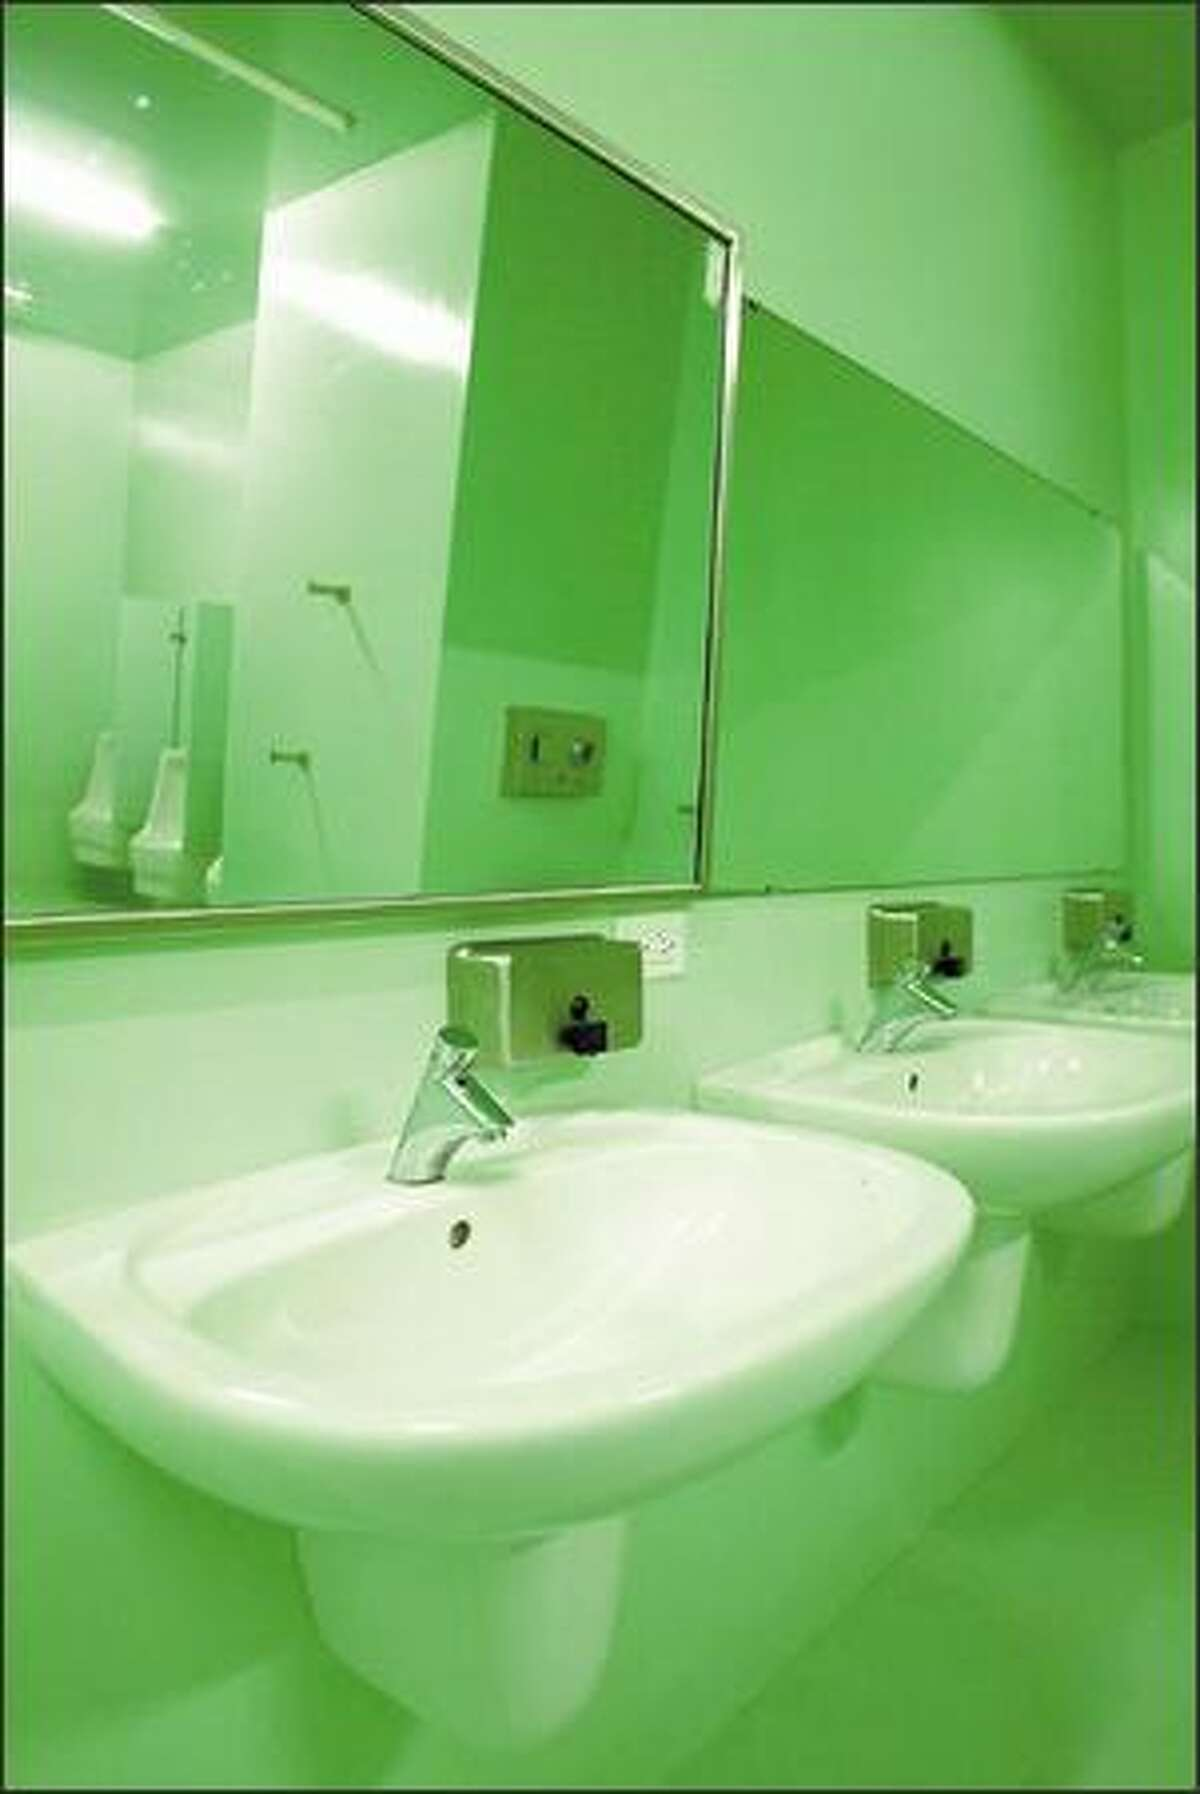 The men's restrooms at the new library were purposely painted a hideous green to discourage long-term use by patrons or the homeless.